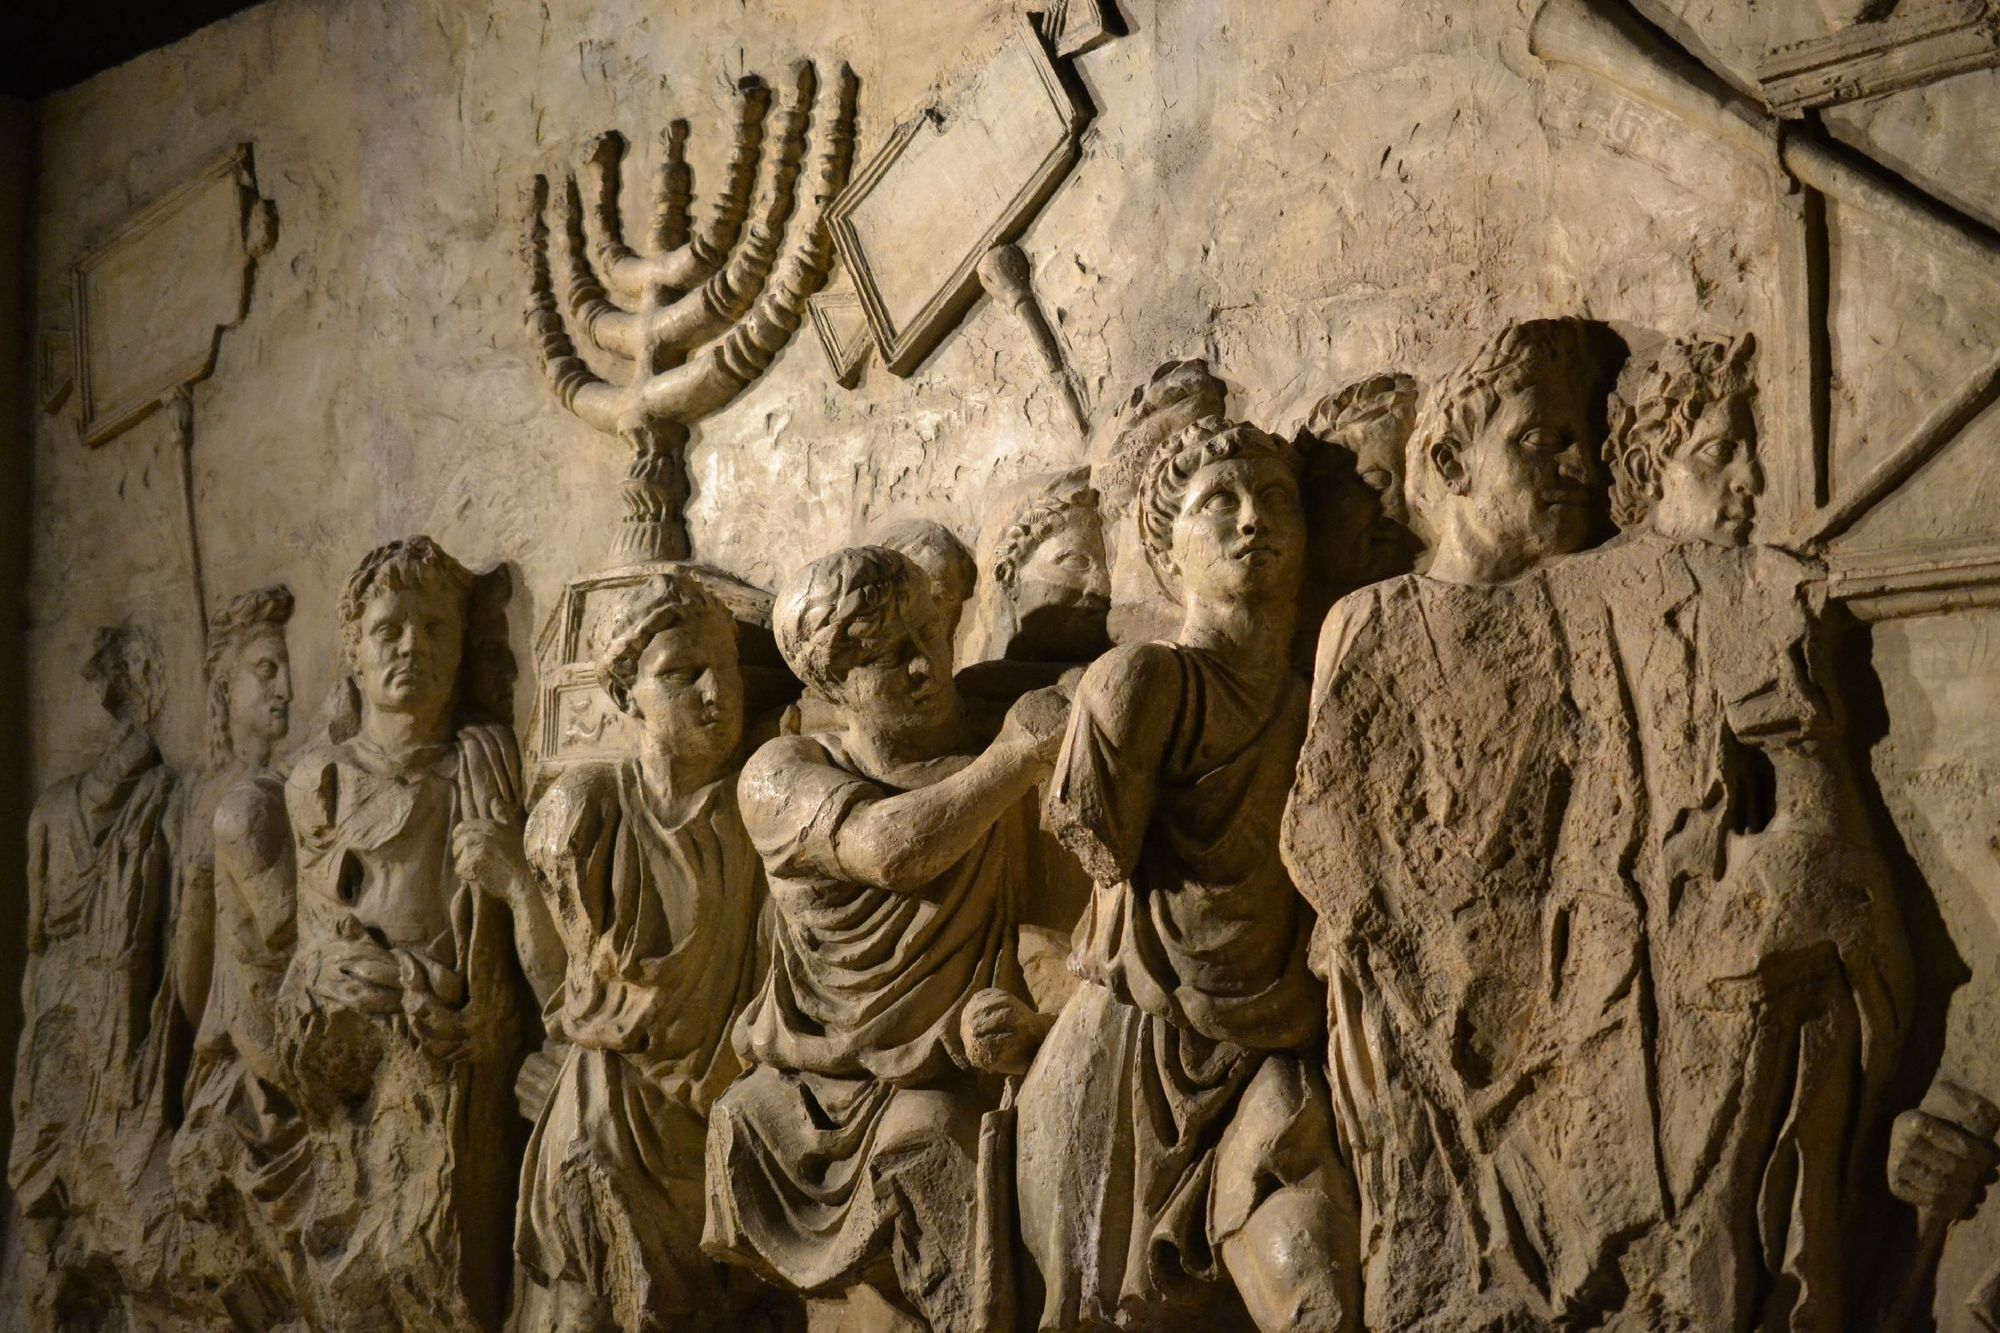 Carving on Arch of Titus depicting the taking of the Menorah from the Jewish Temple in 70 AD